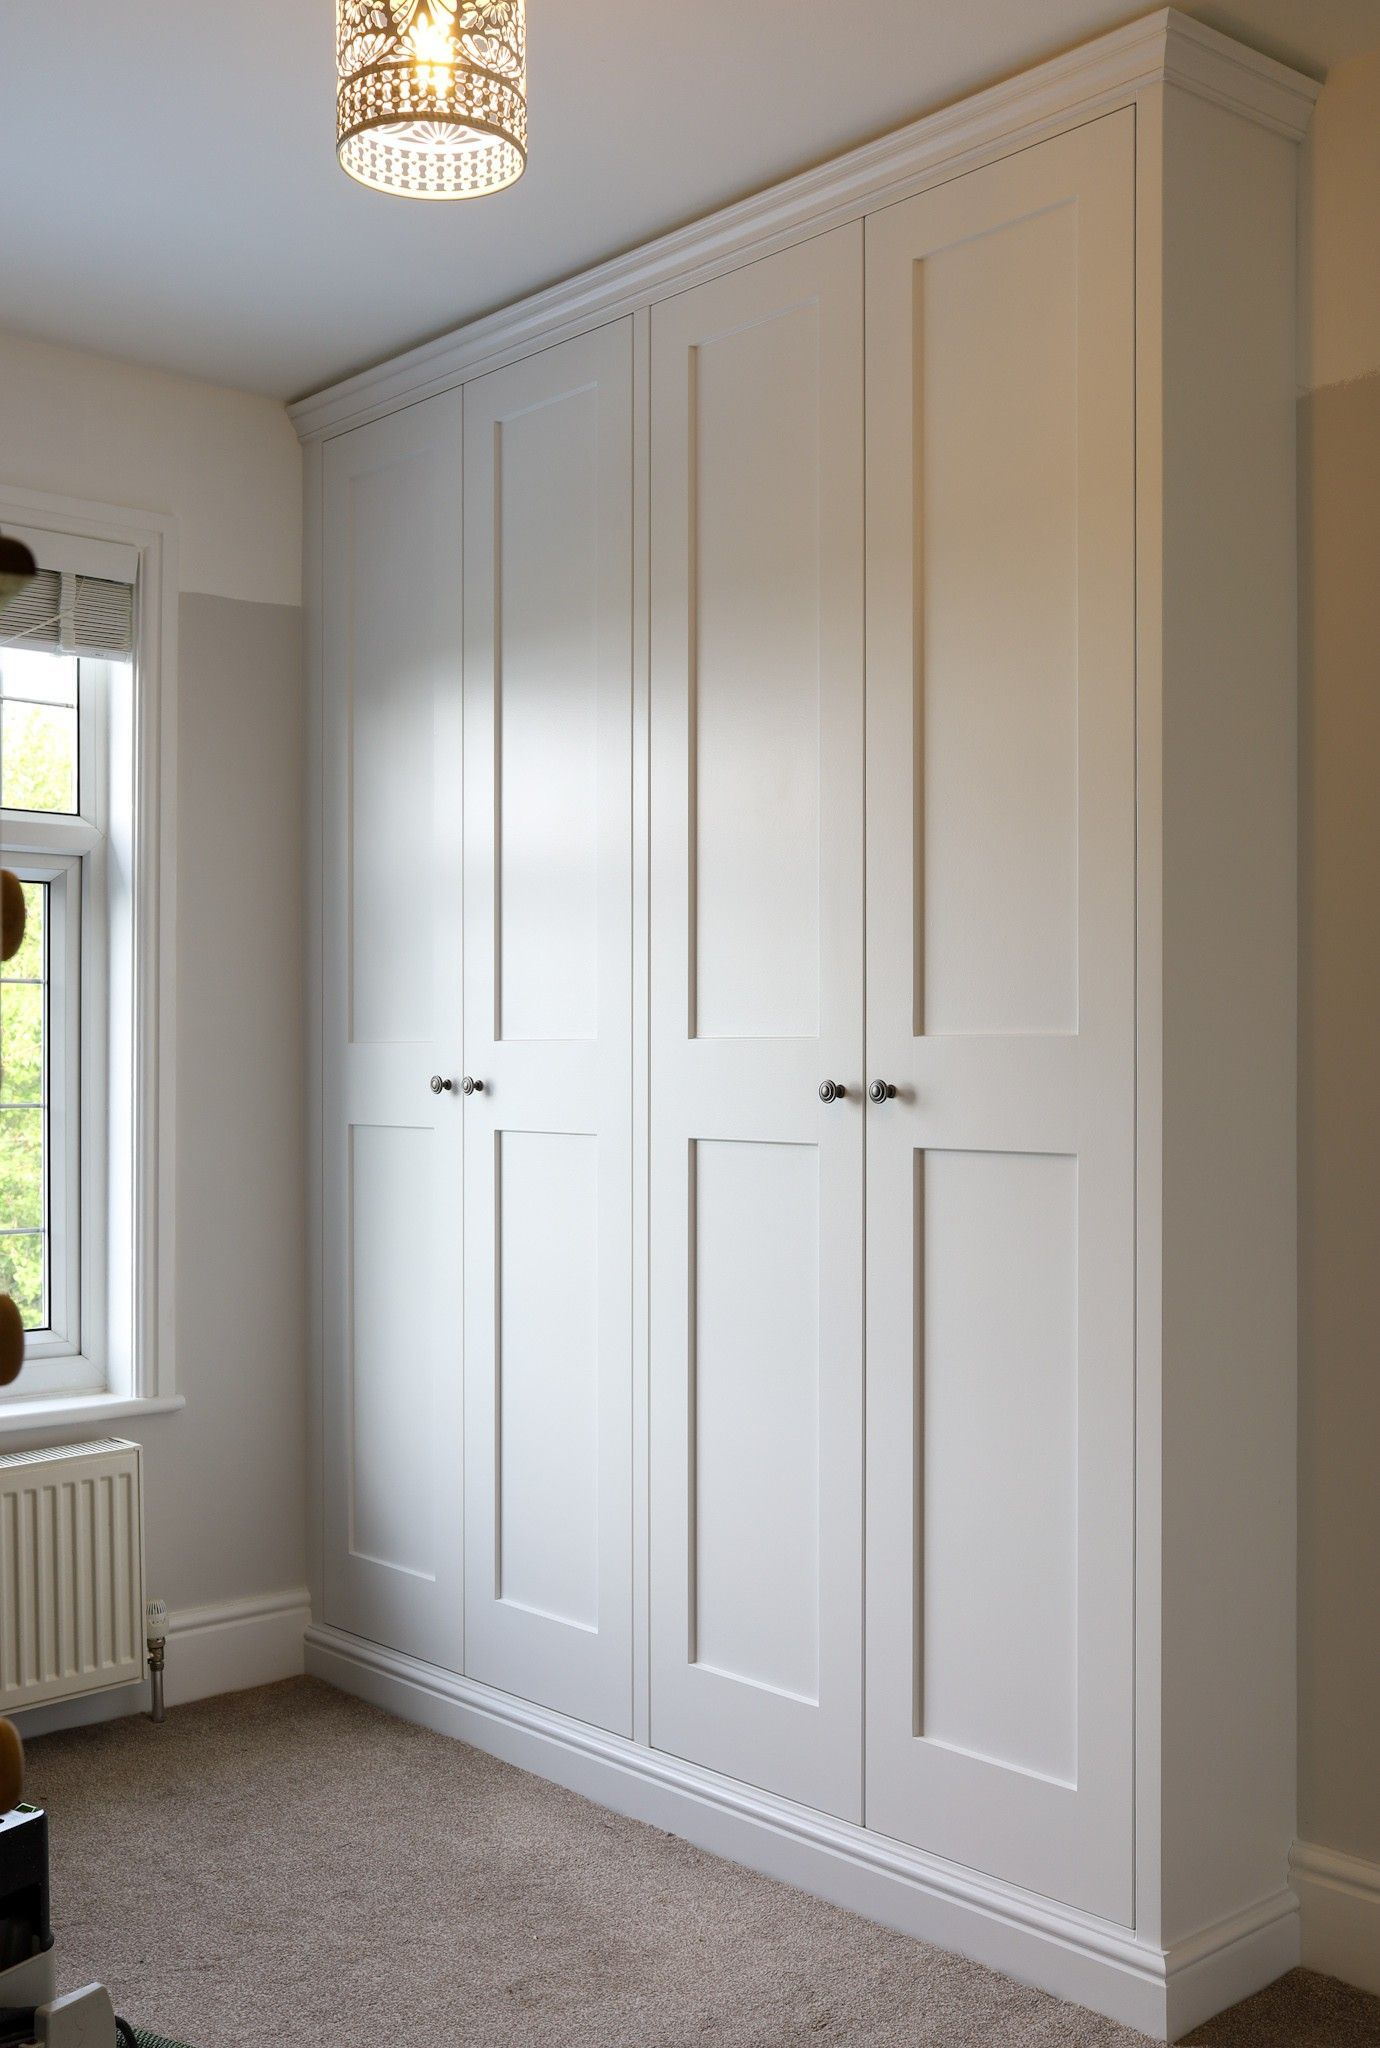 4 door shaker wardrobes made and fitted by TW Bespoke in Burton on Trent (With images) | Bedroom built in wardrobe, Wardrobe door designs, Bedroom built ins